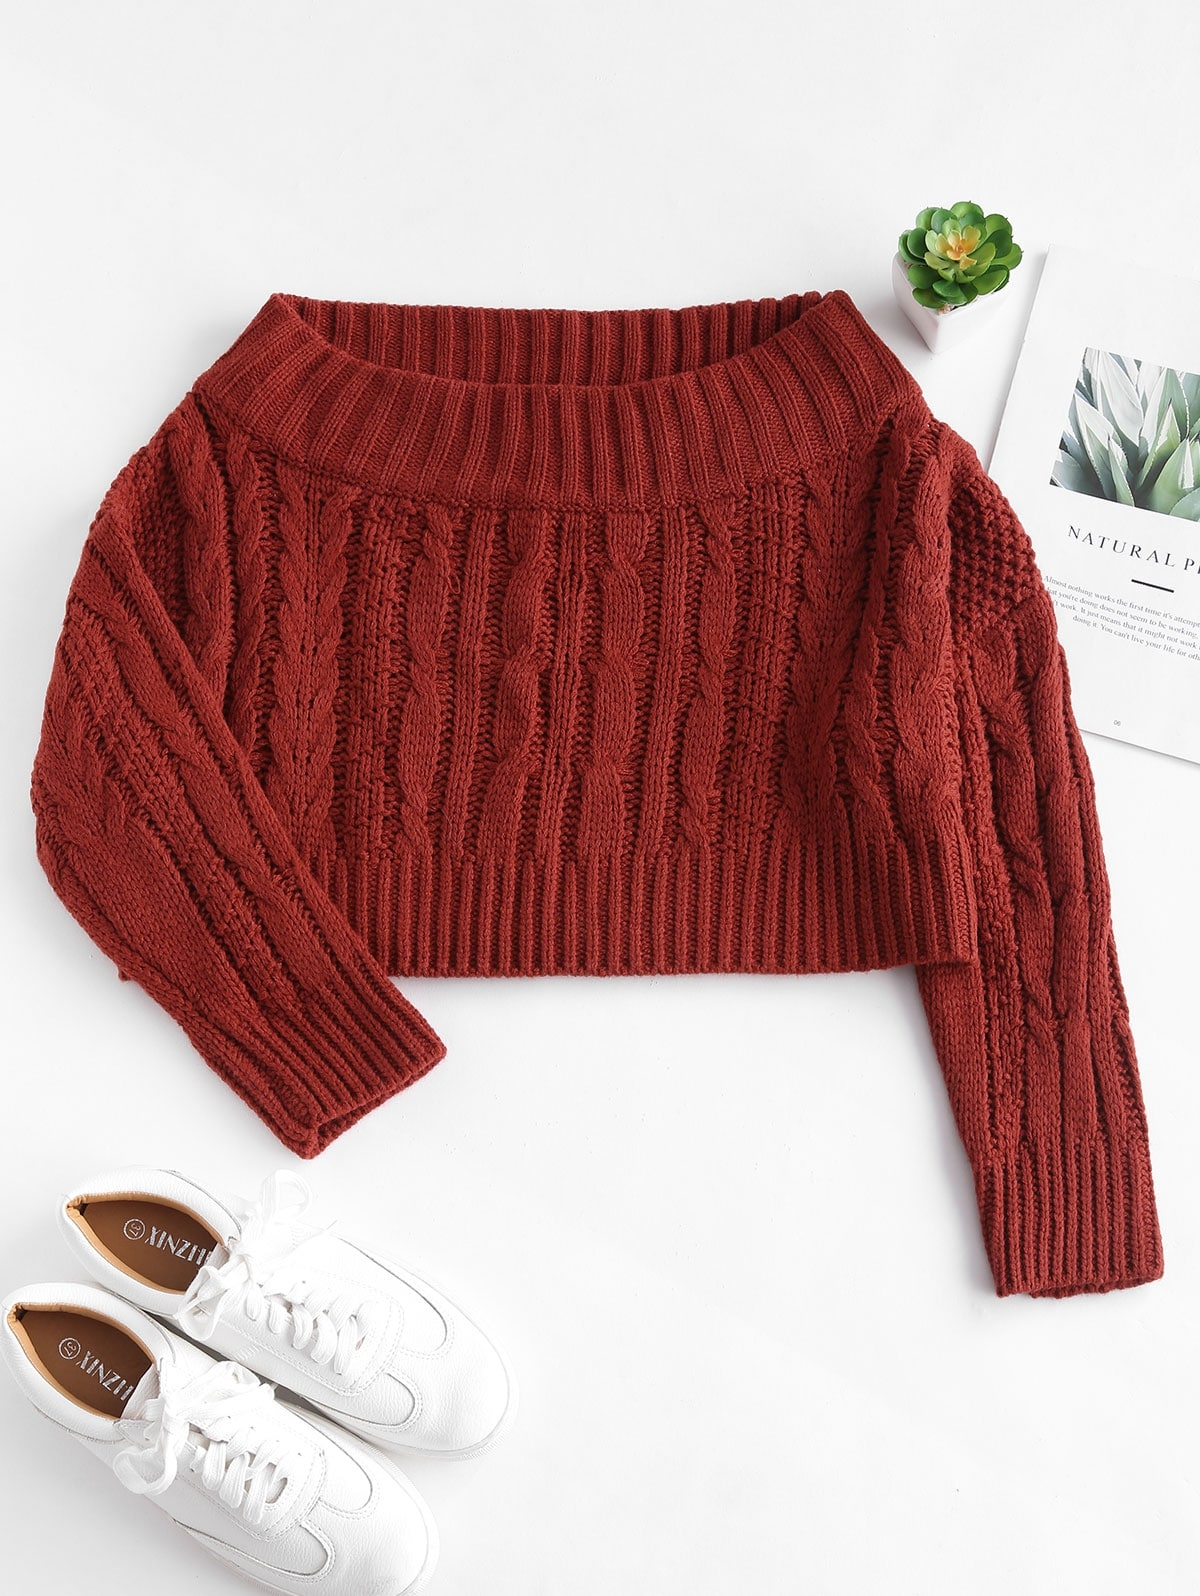 Off The Shoulder Sweater Knitting Pattern Cable Knit Off The Shoulder Sweater